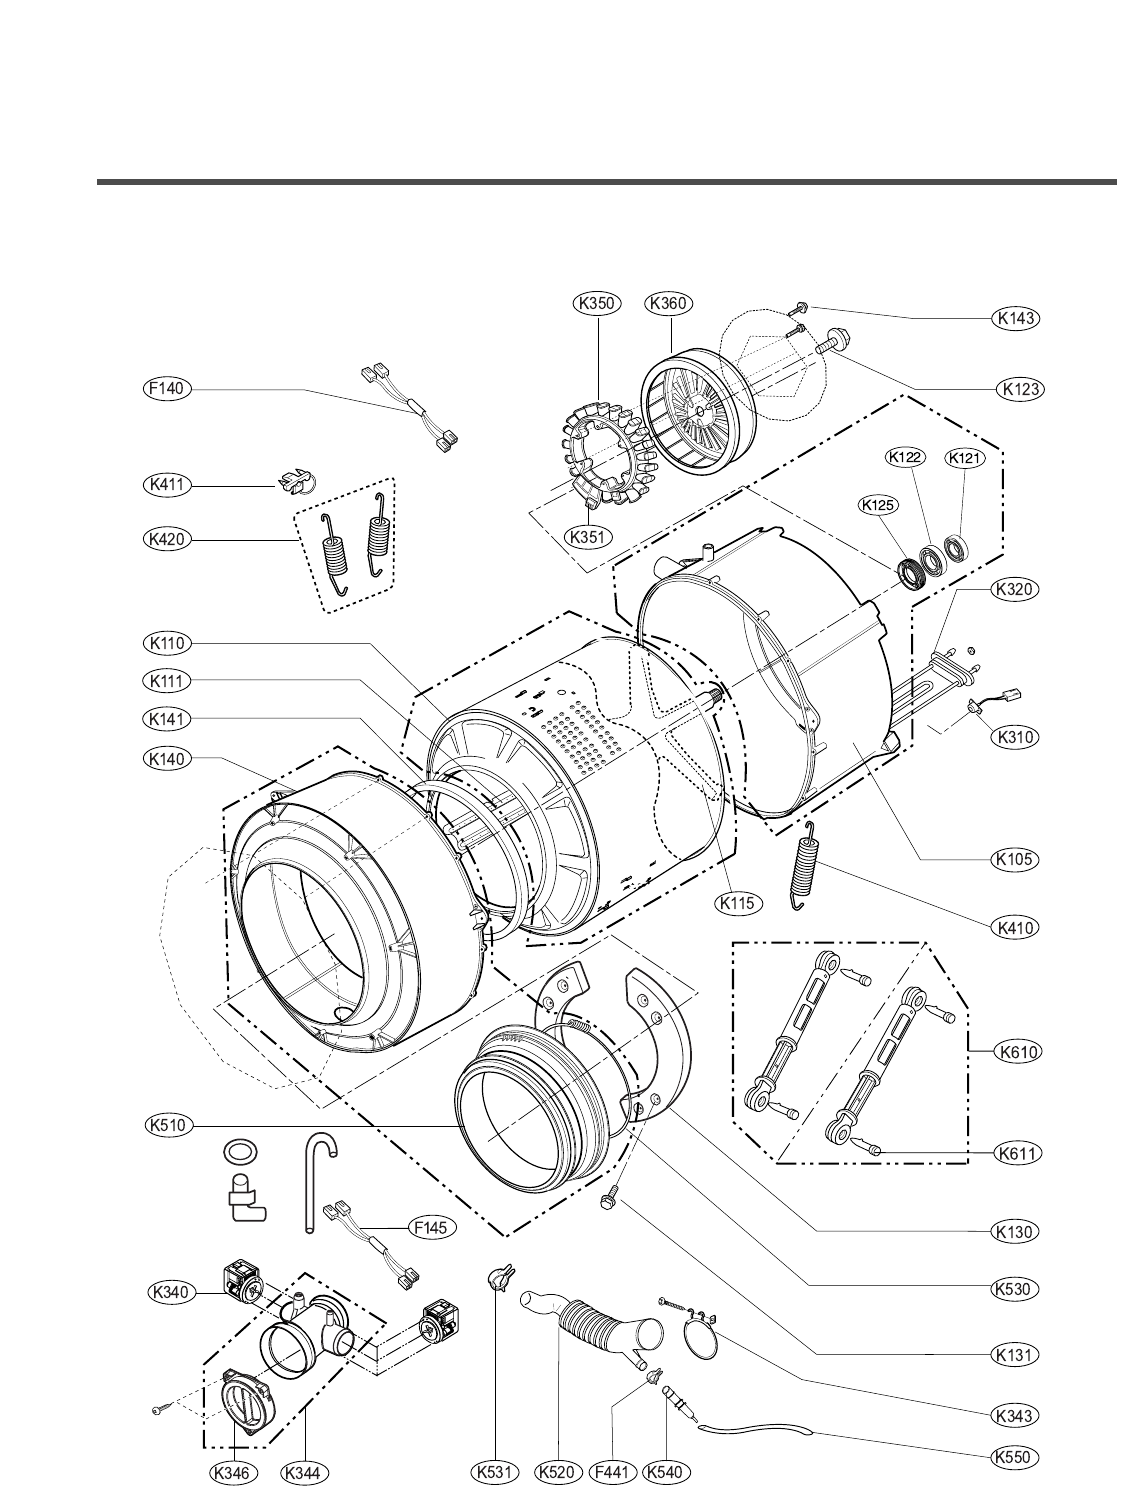 page 36 of lg electronics washer 14220 5 fdb n  user guide